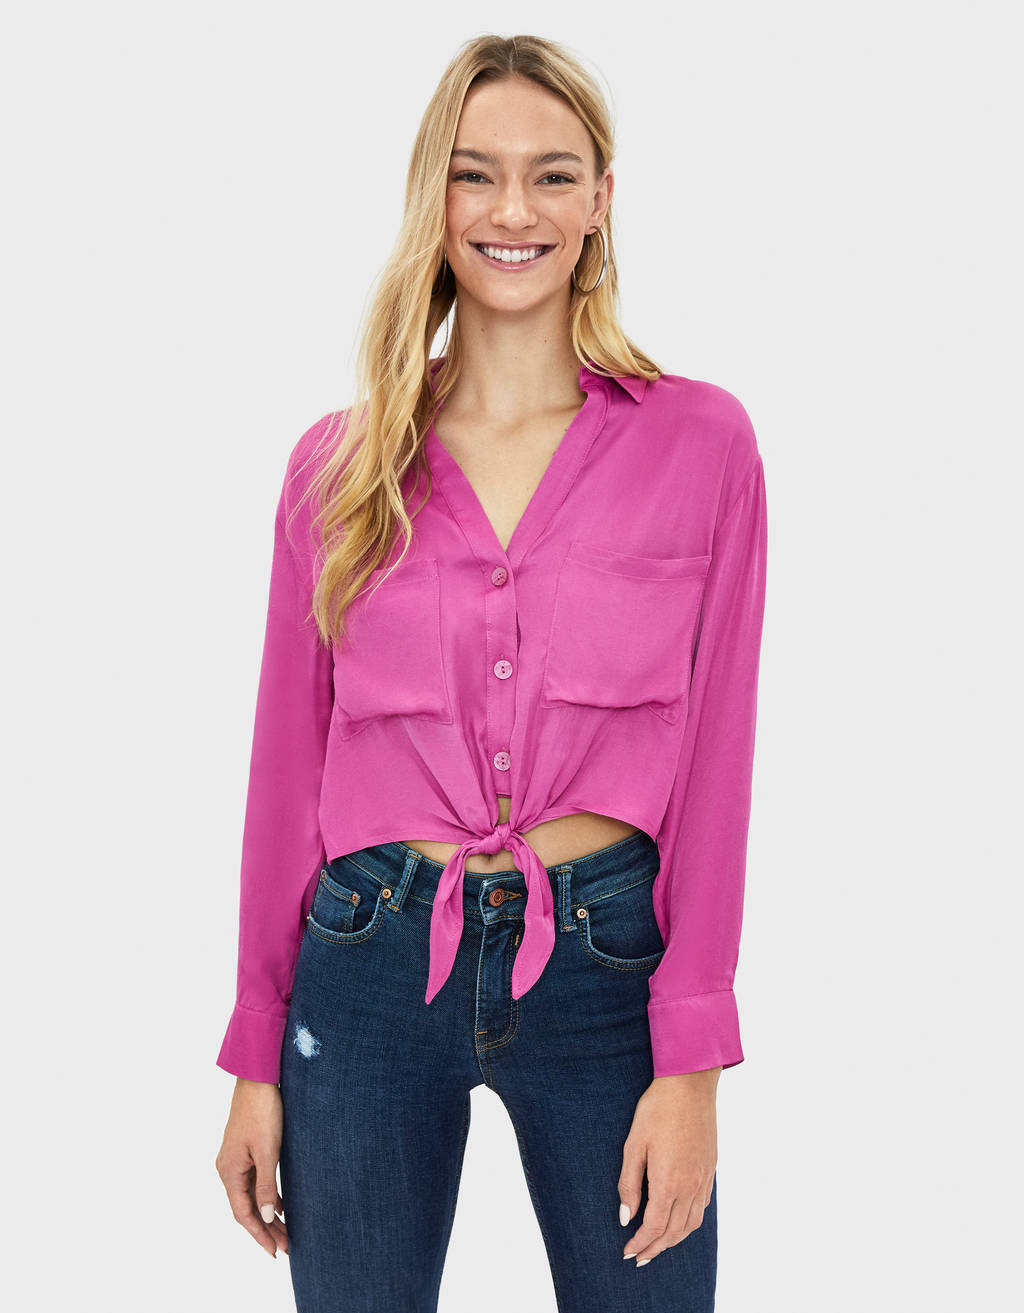 Satin shirt with knot